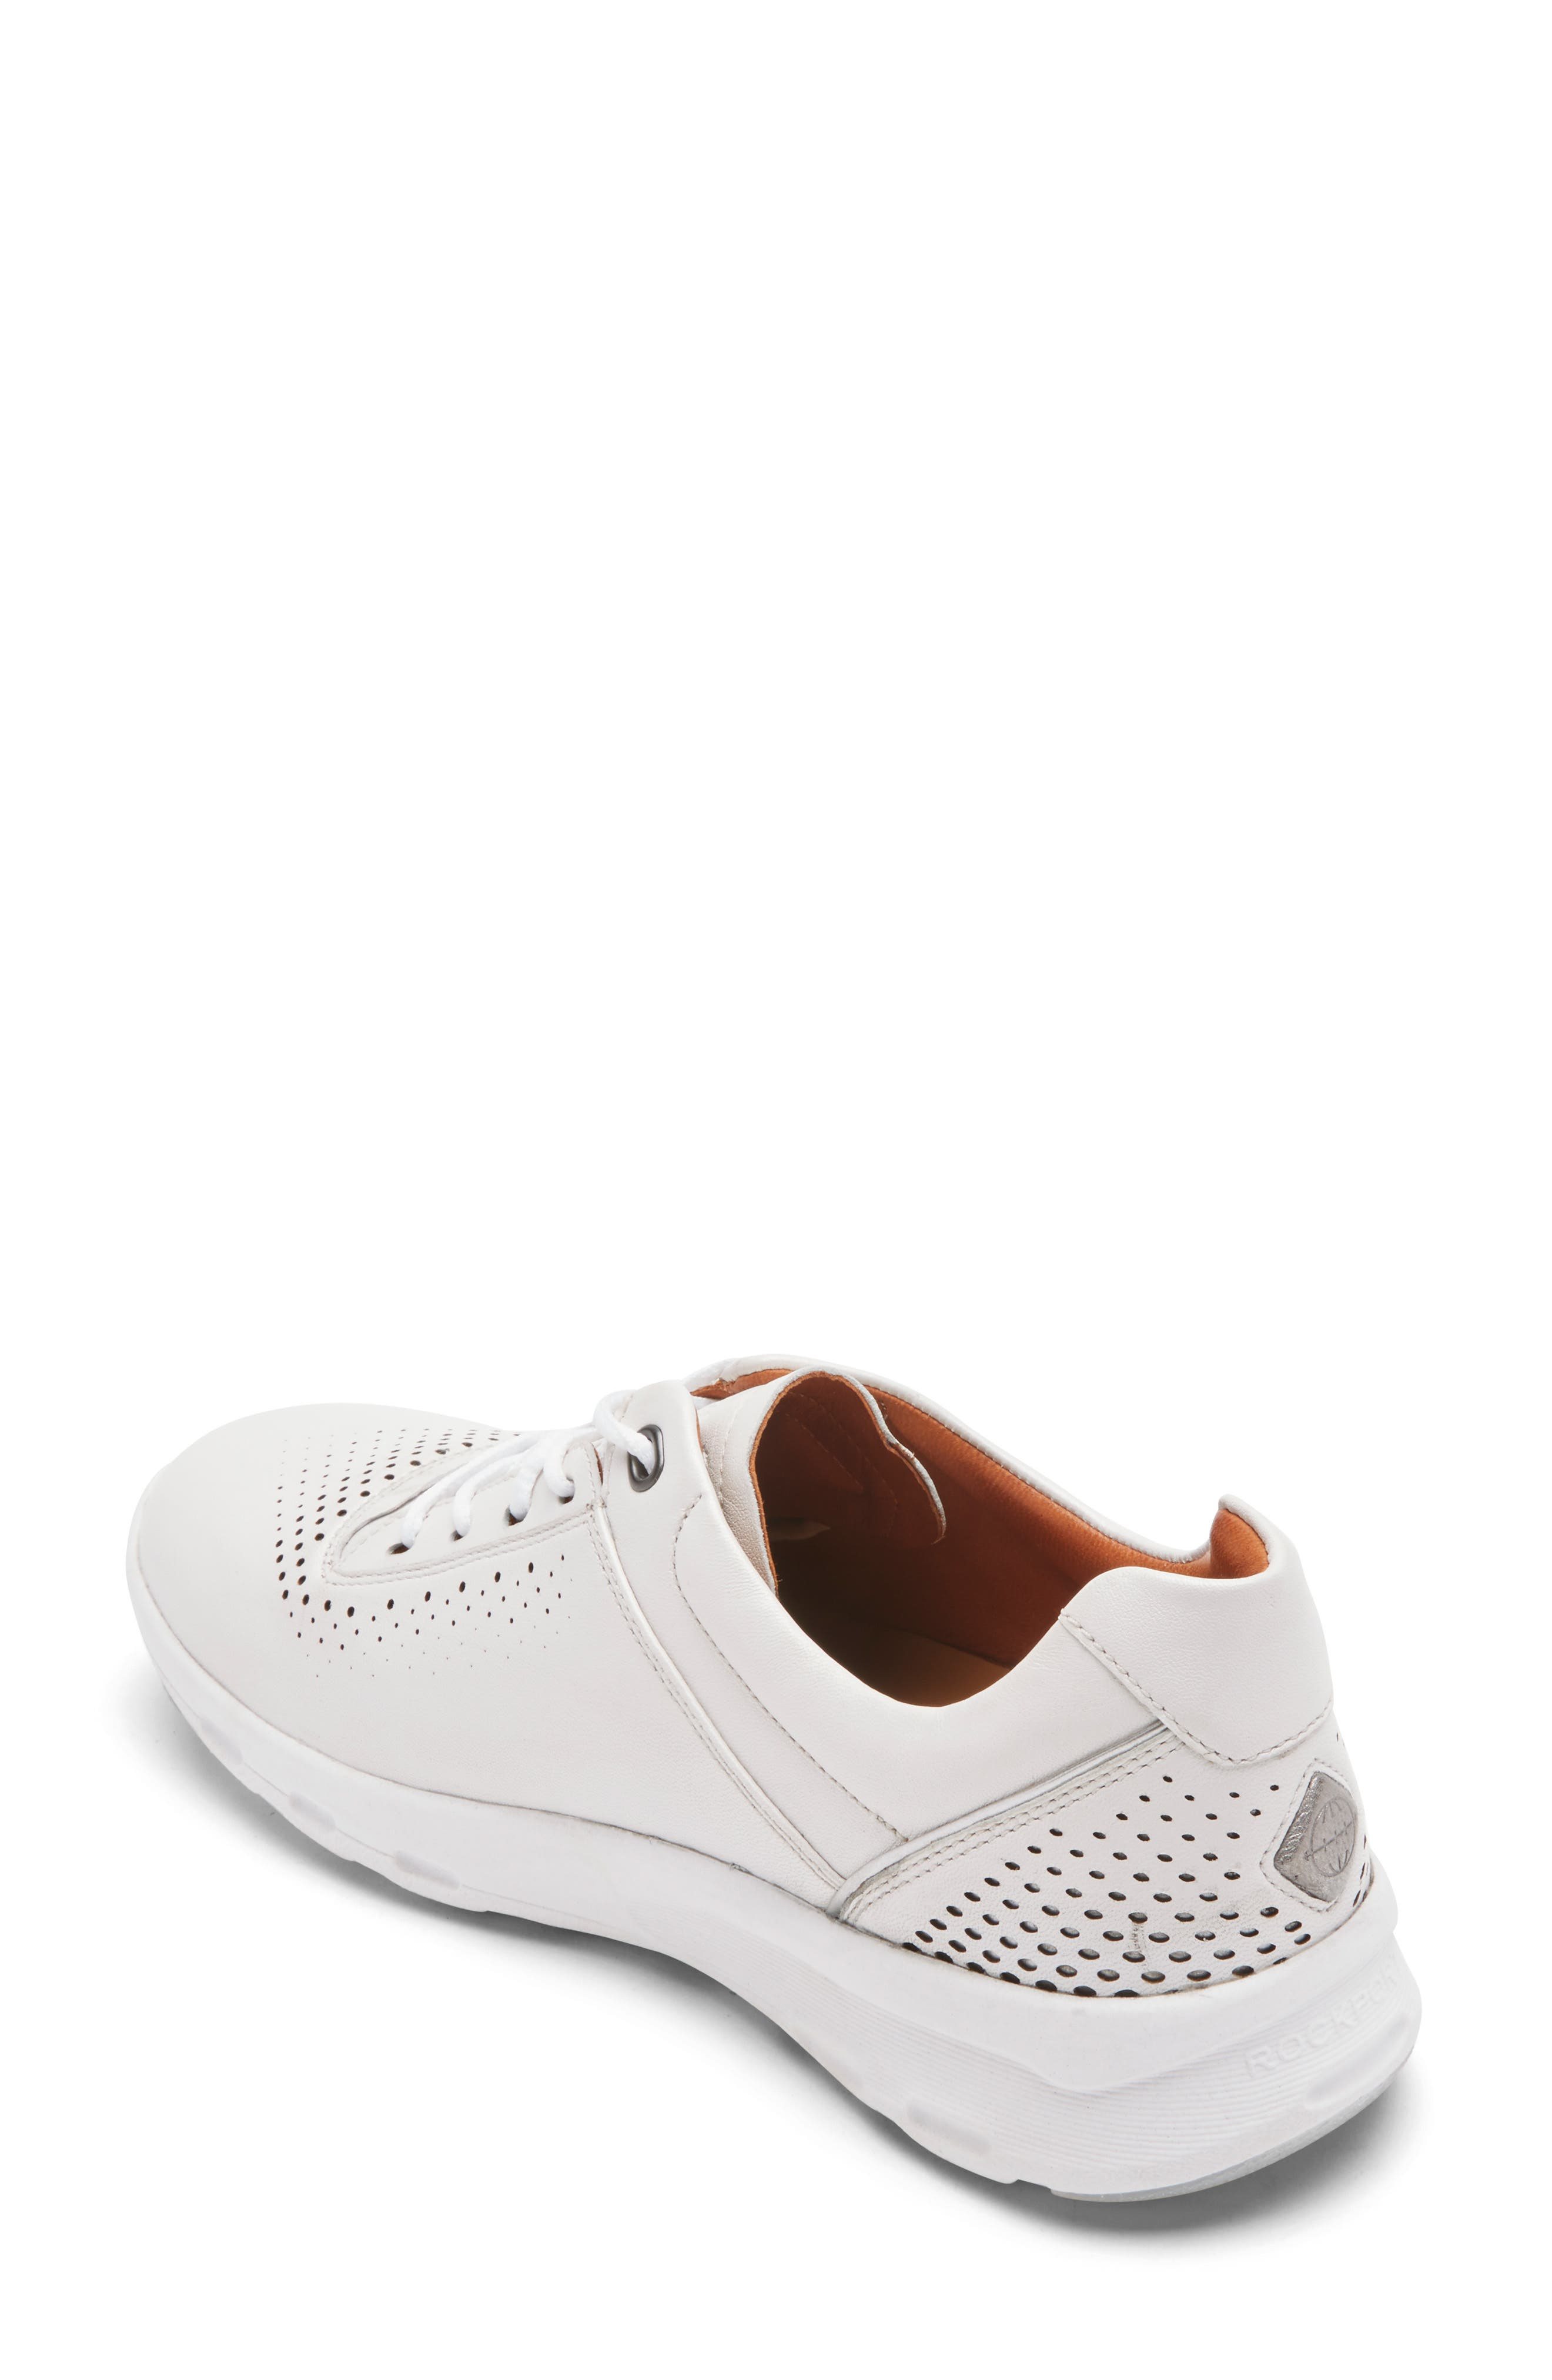 f17ce8df307353 Women s Rockport Sneakers   Running Shoes